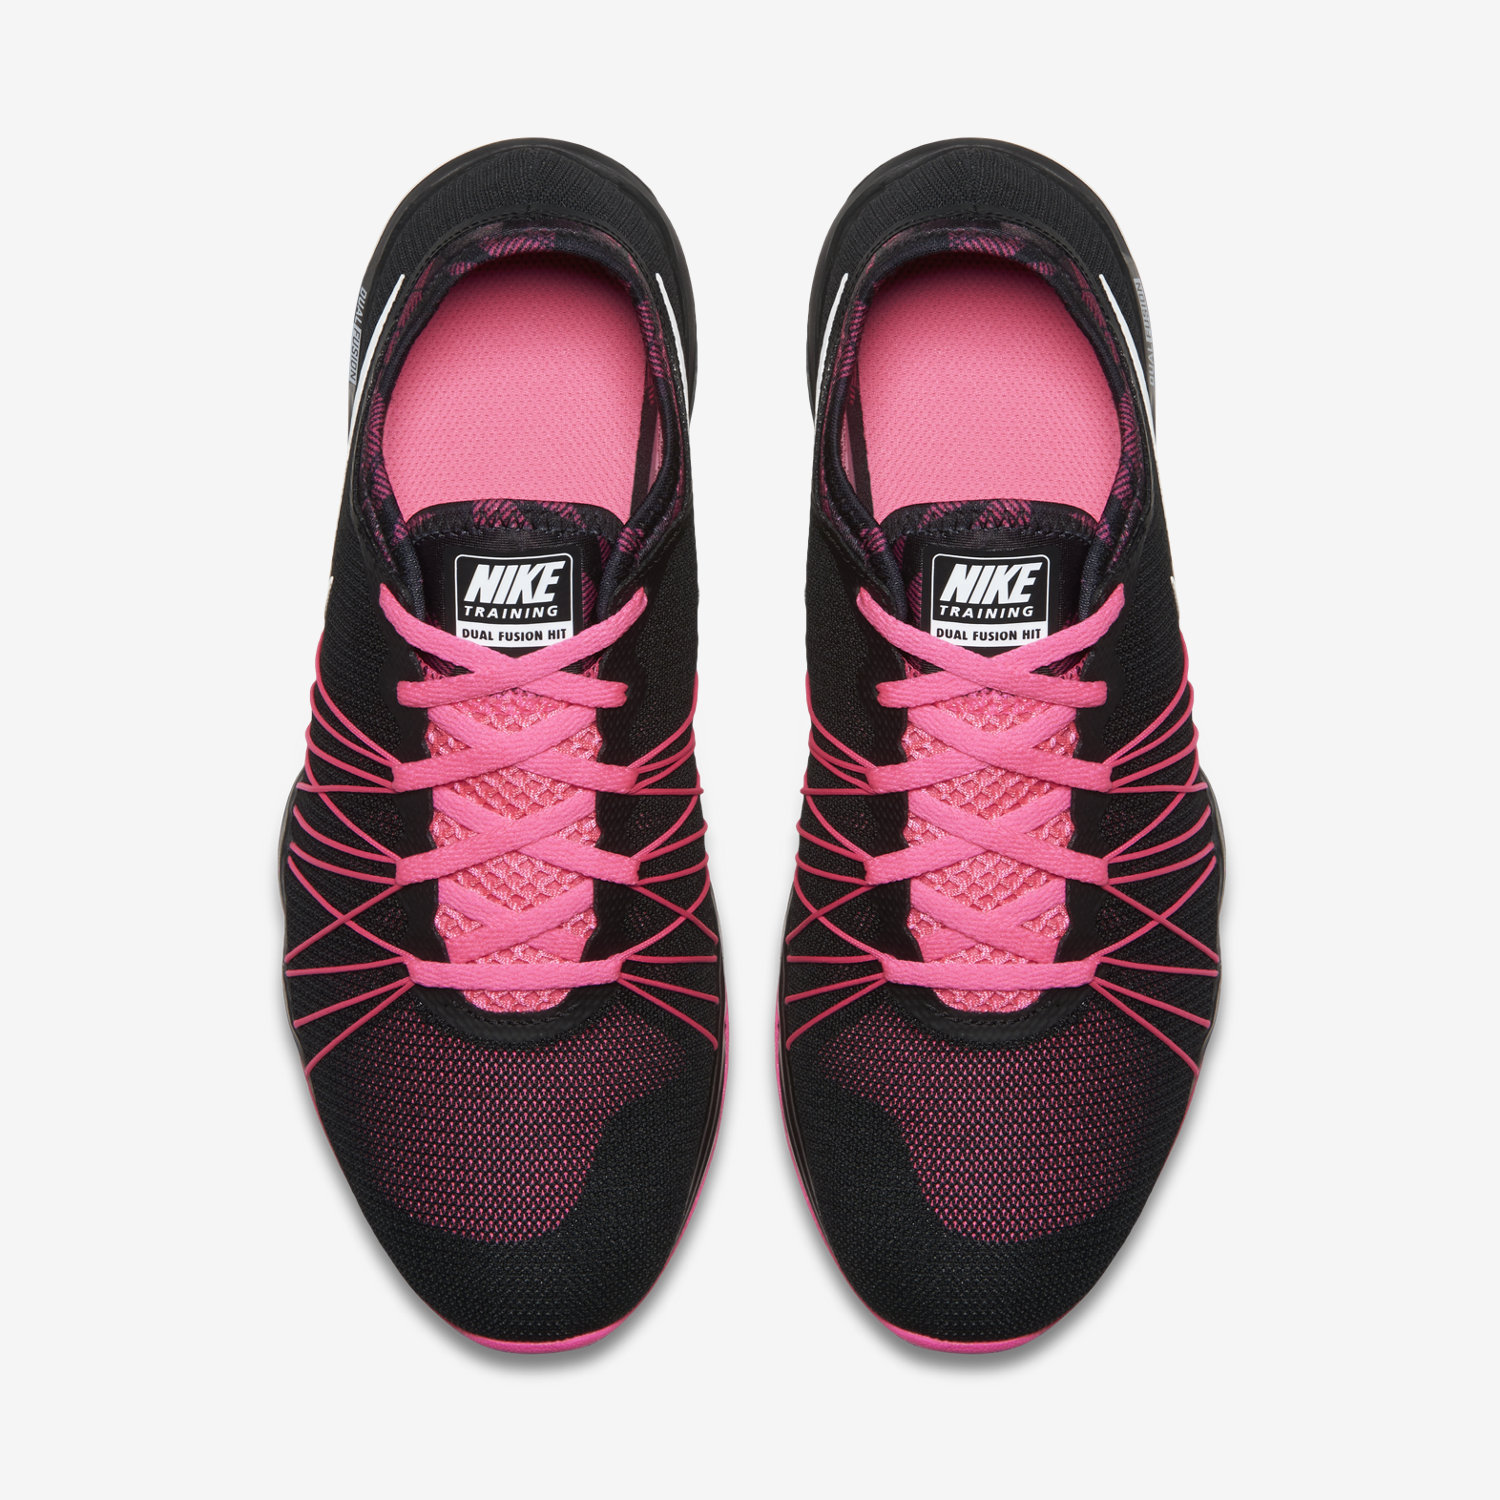 nike air max femmes bottes - Nike Dual Fusion HIT Print Women's Training Shoe. Nike.com AU